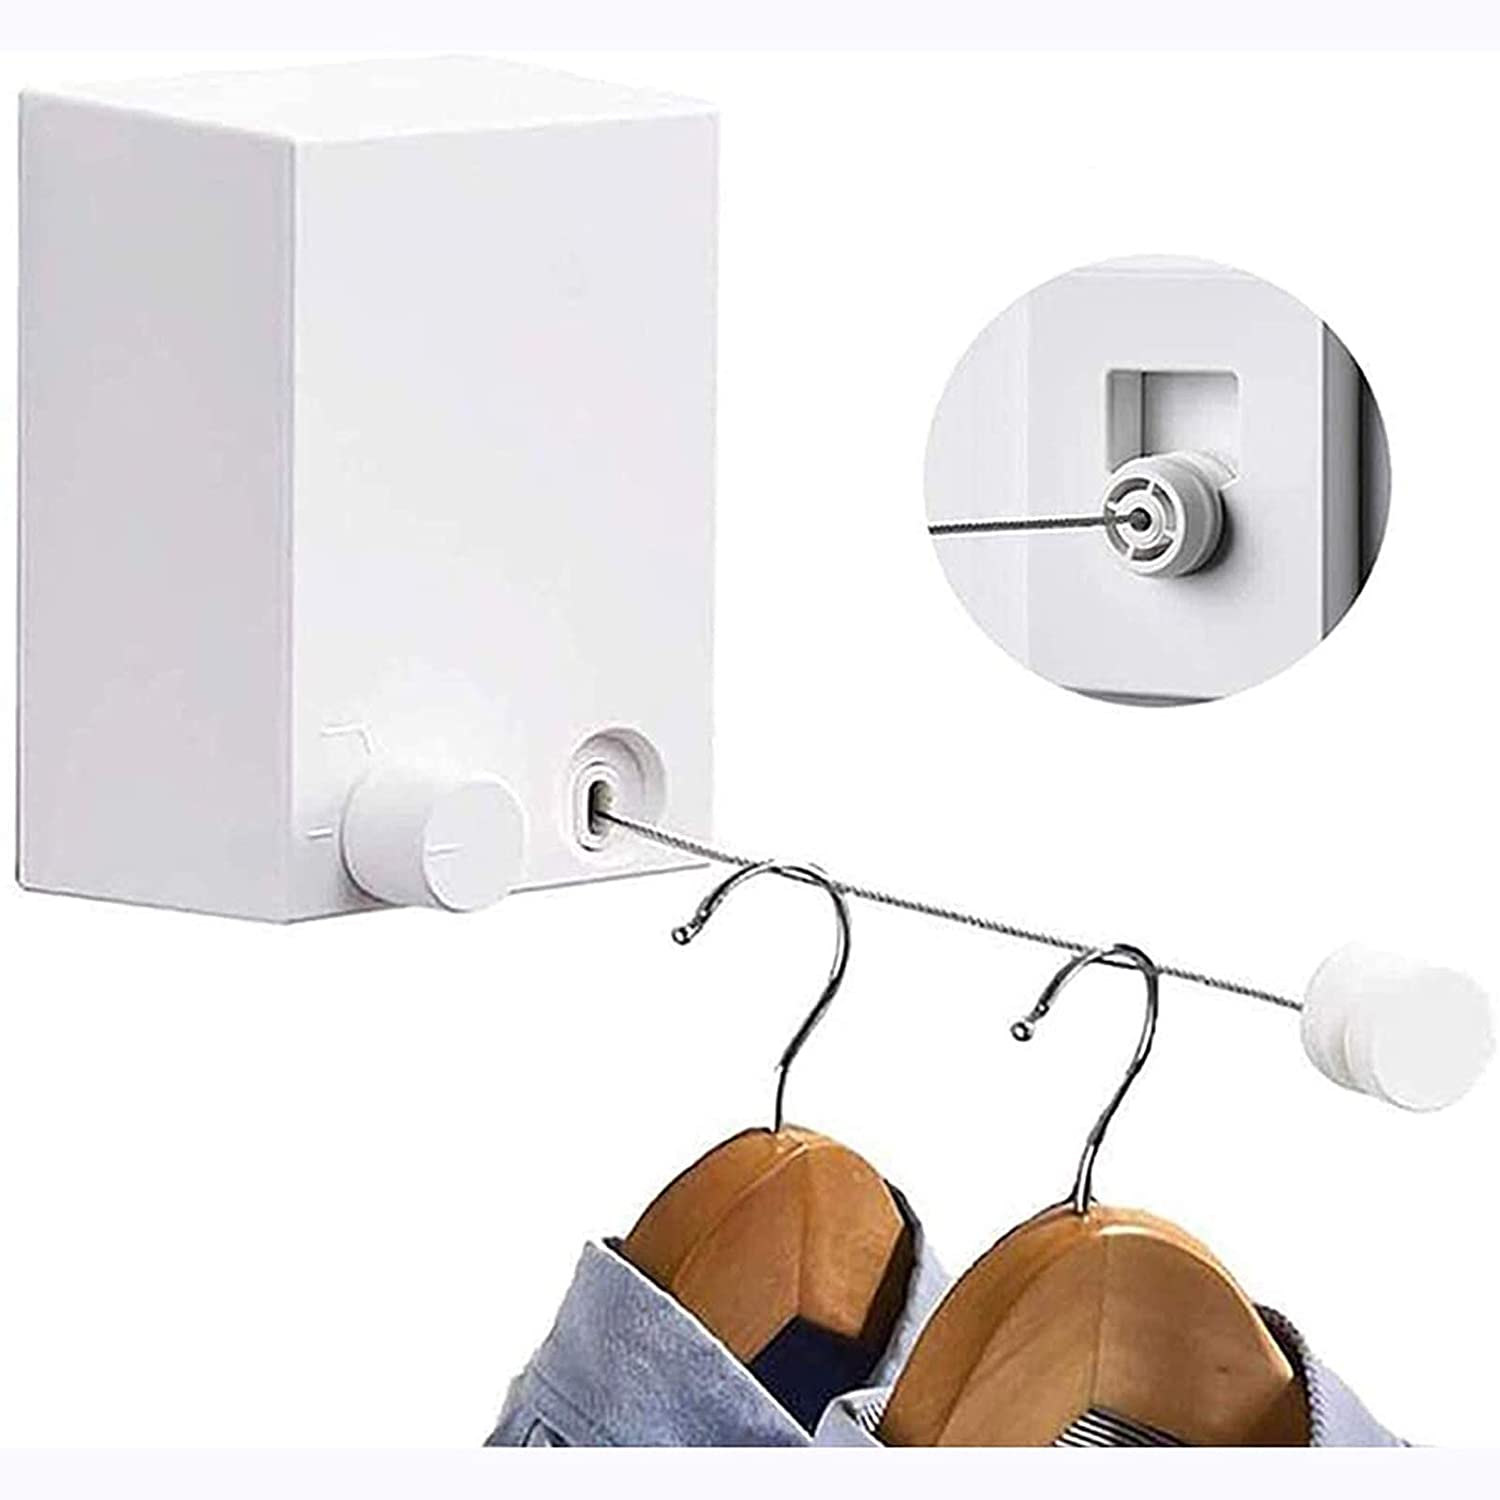 BaiJaC Drying All stores are sold racj Lines Me Clothesline 4 years warranty Retractable 4.2